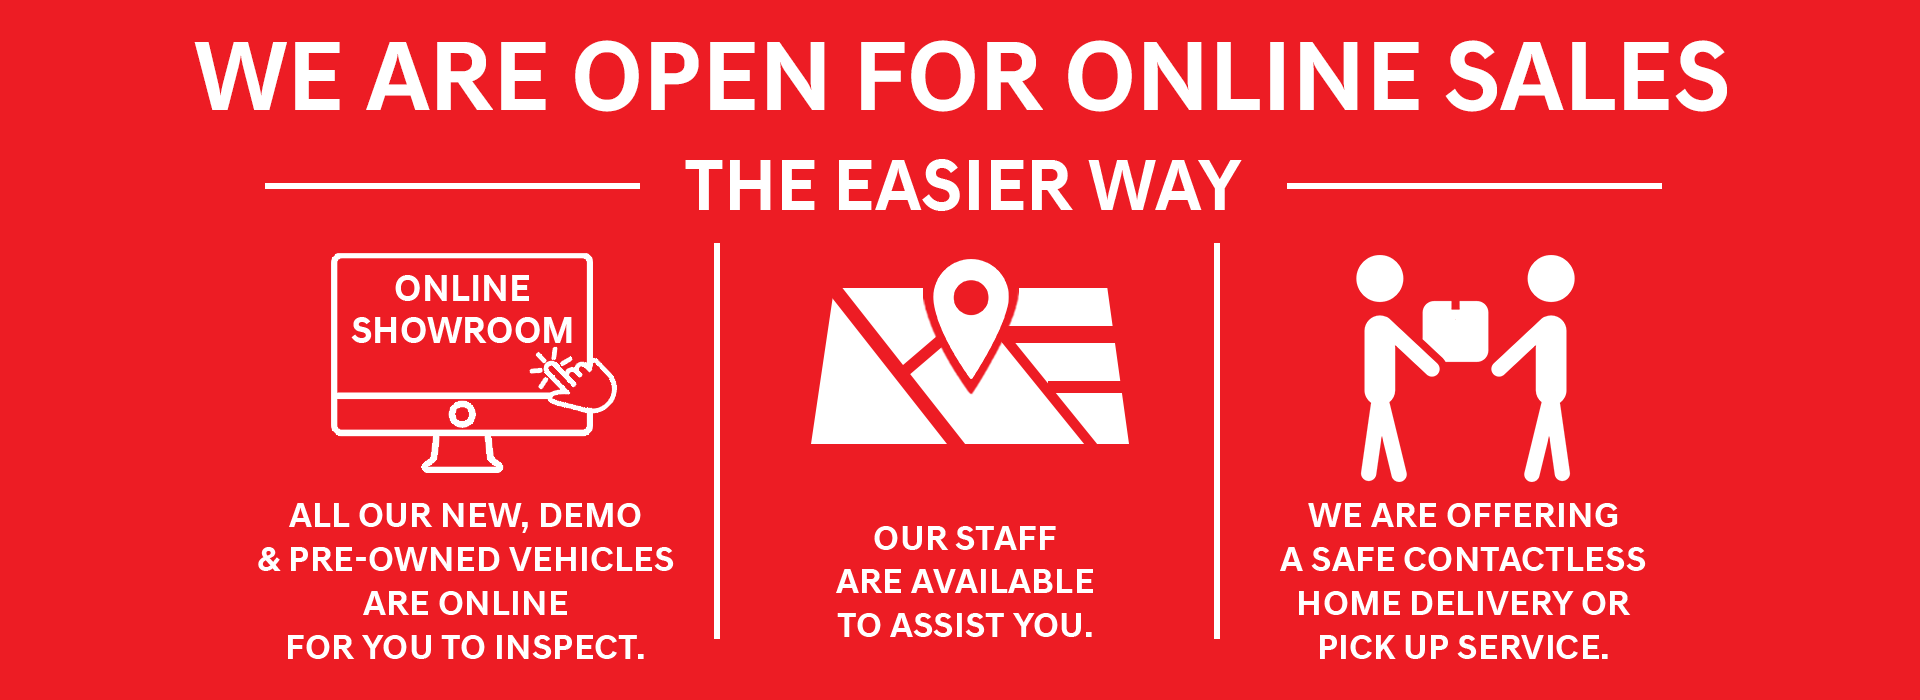 Dandenong Mitsubishi - We are open online